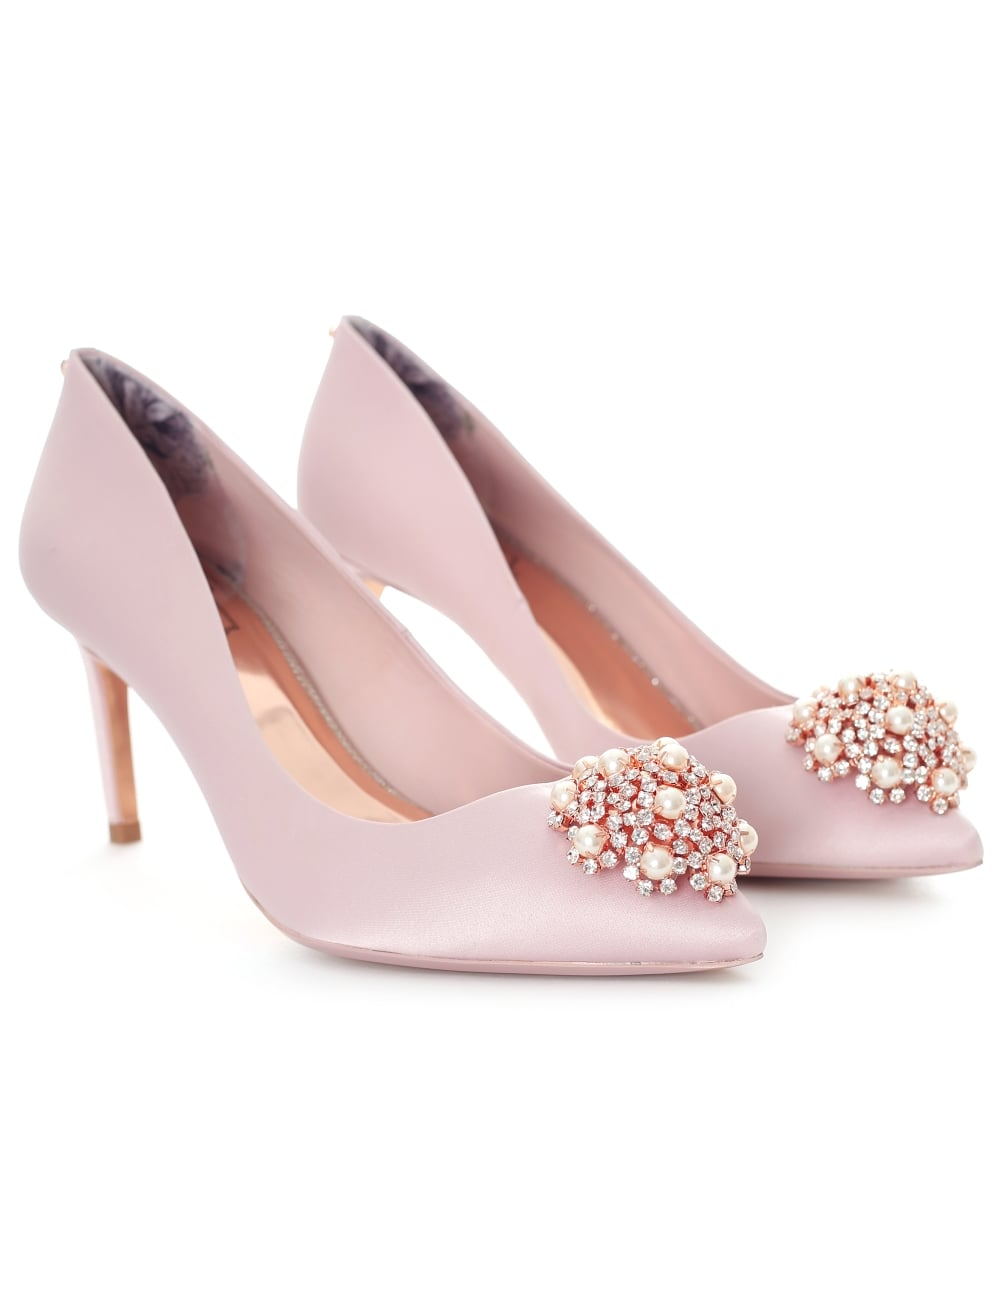 93fd8958fb6 Ted Baker Women s Dahrlin Jewel Broach Mid Heel Court